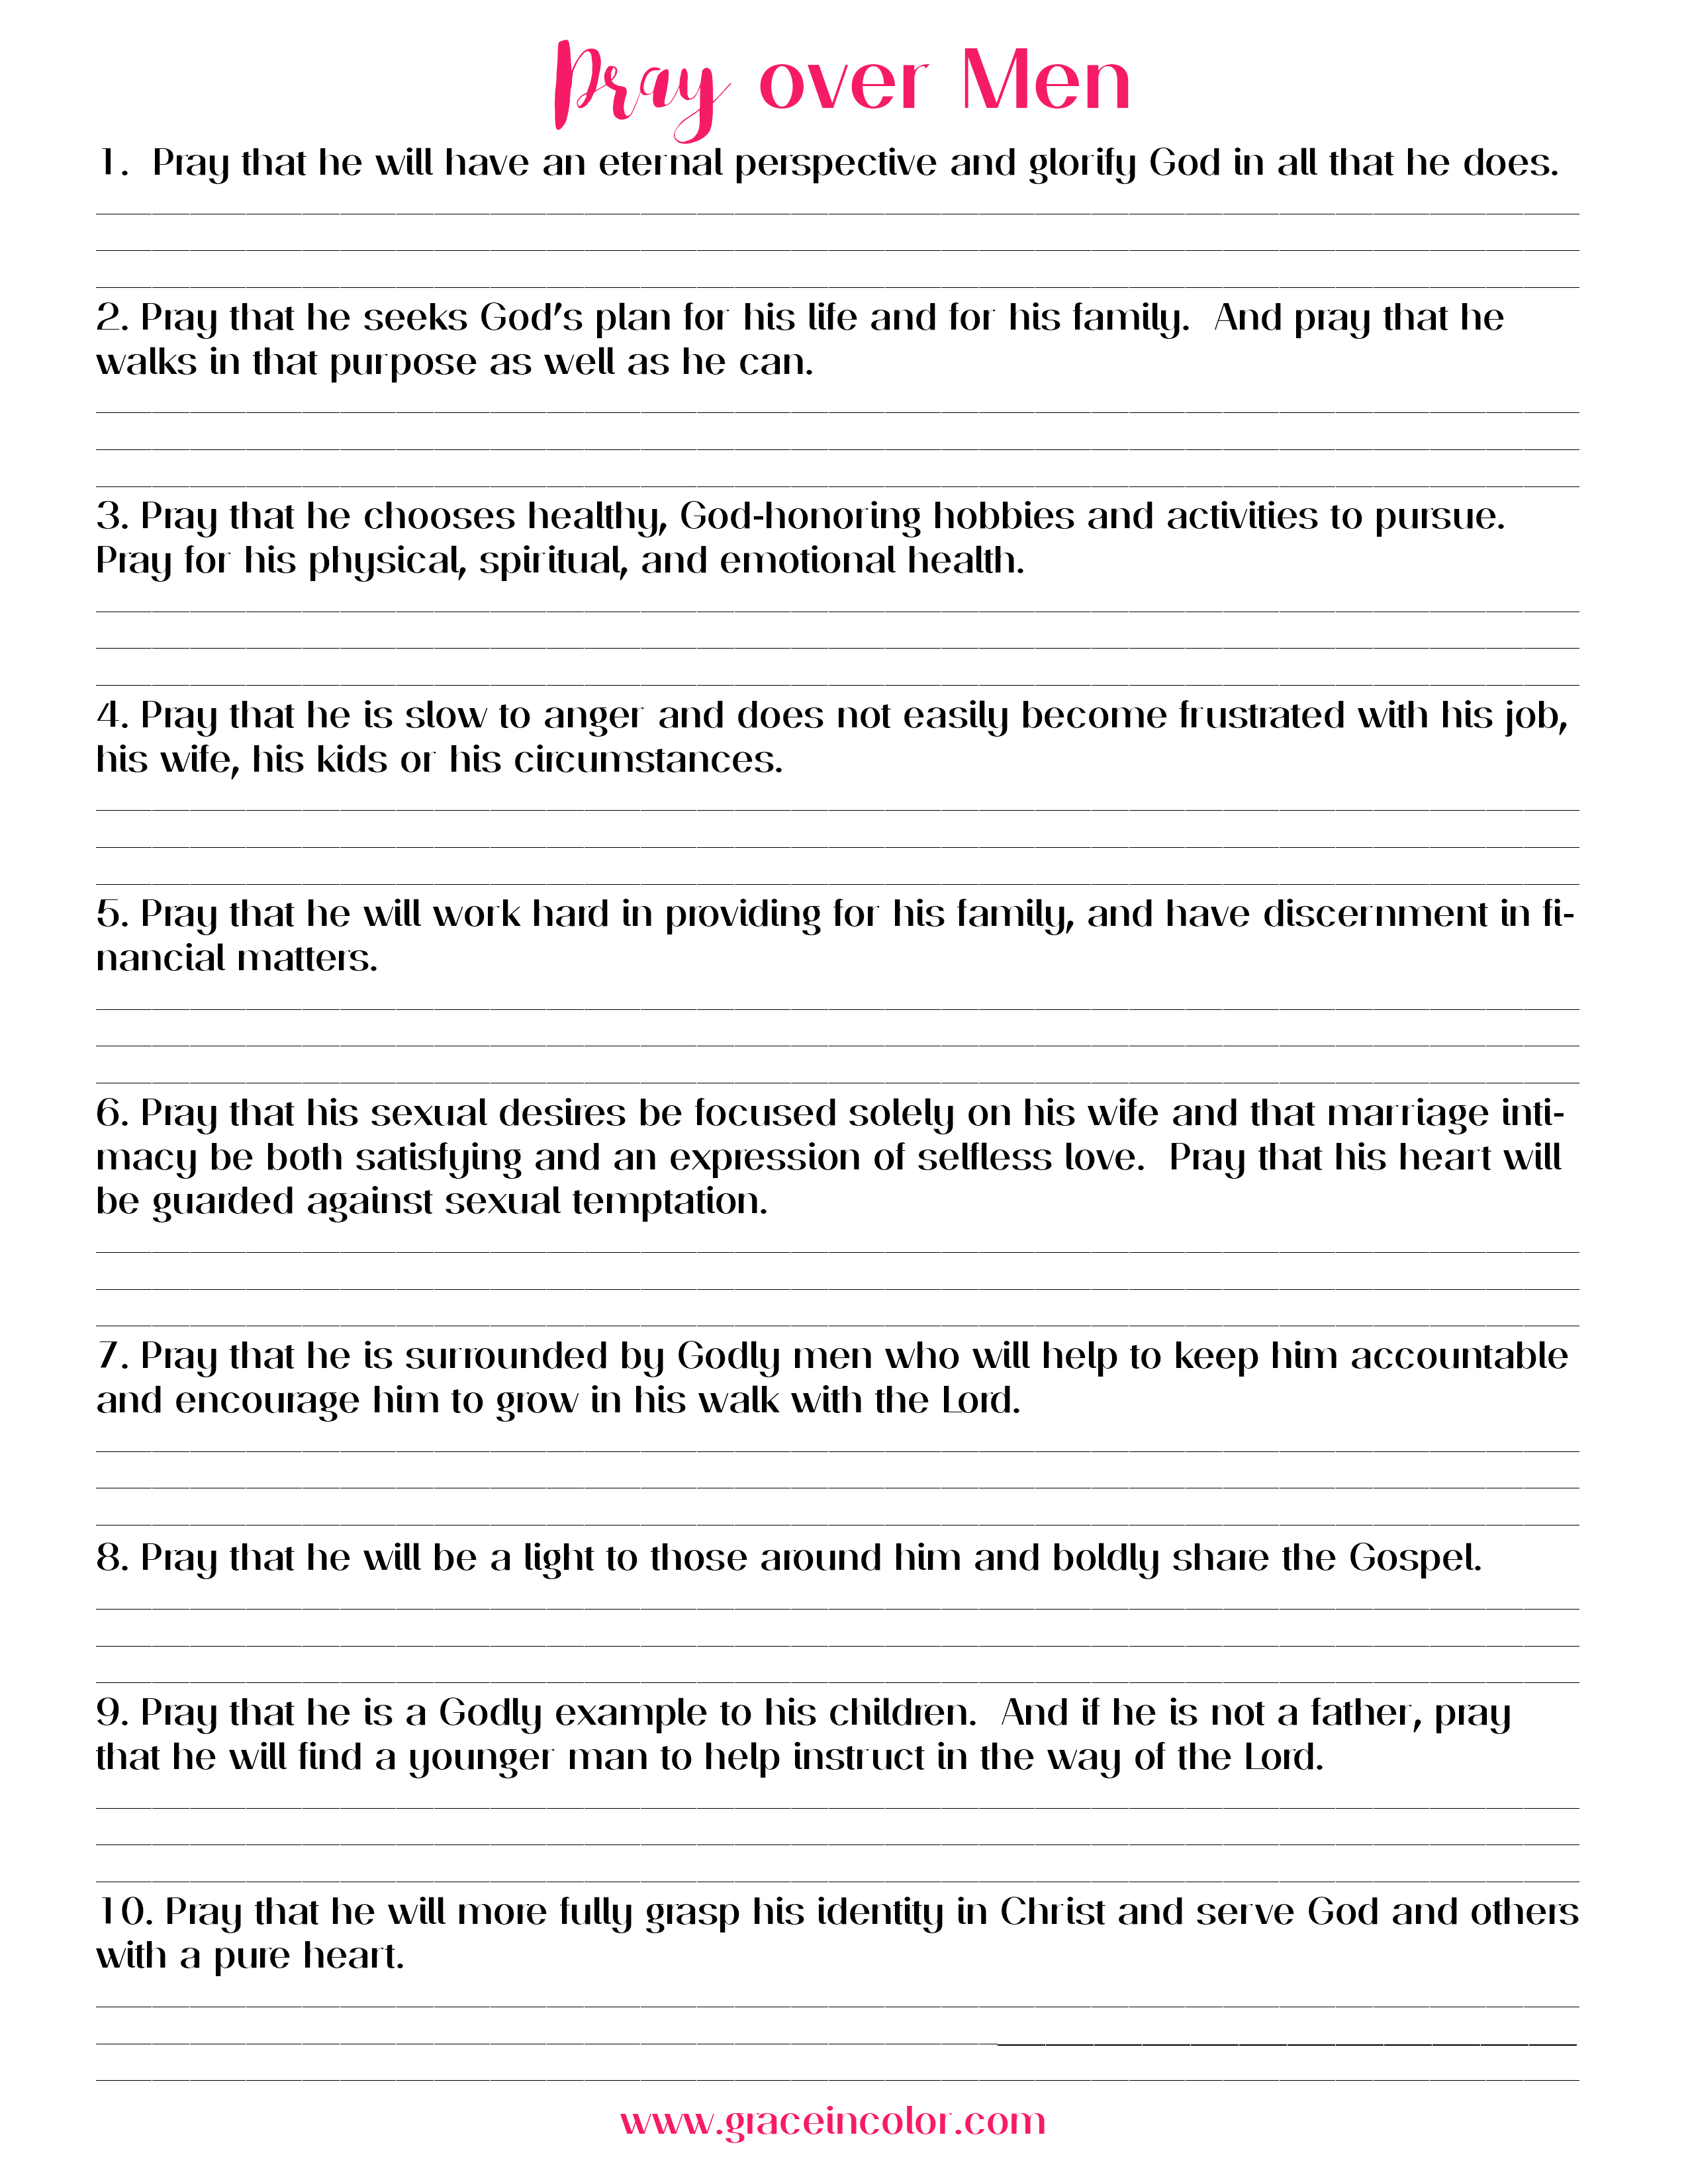 Prayer Prompts for the Men in your Life: Free Printable